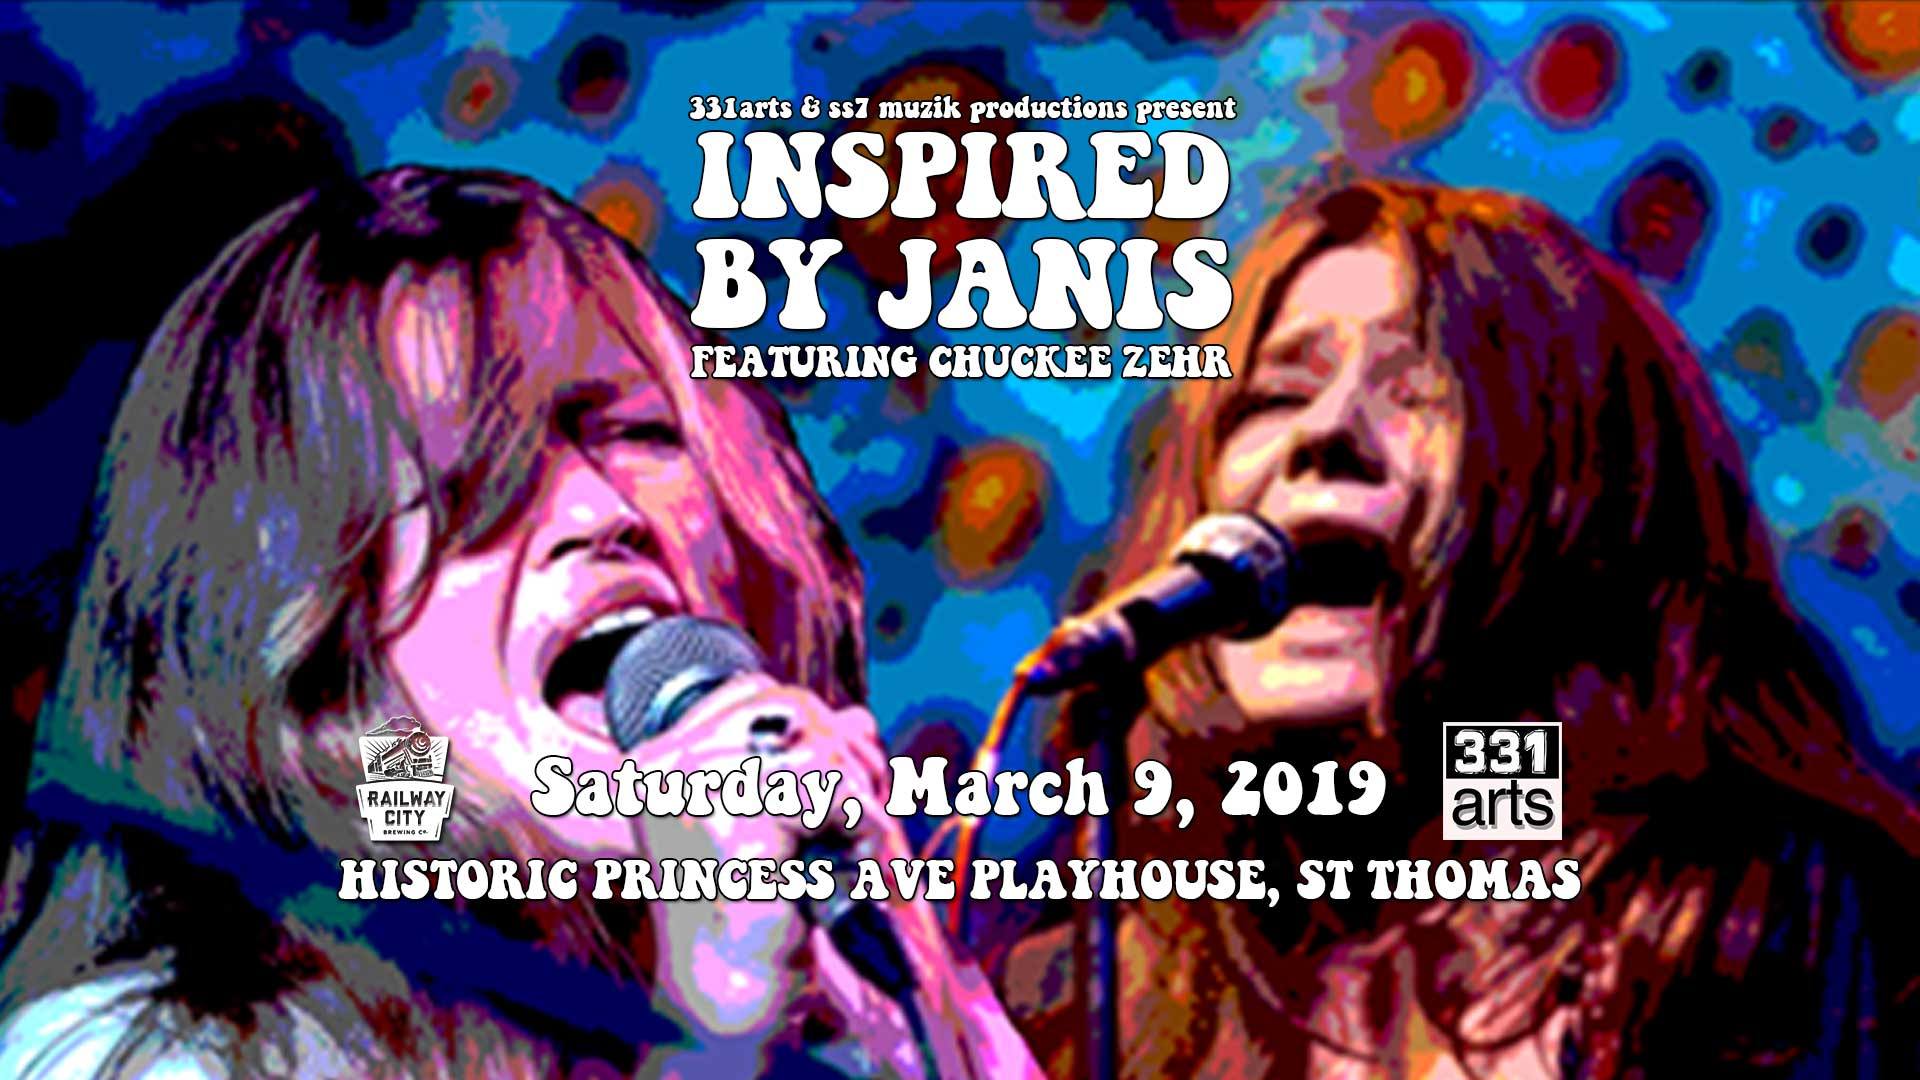 Inspired by Janis featuring Chuckee Zehr